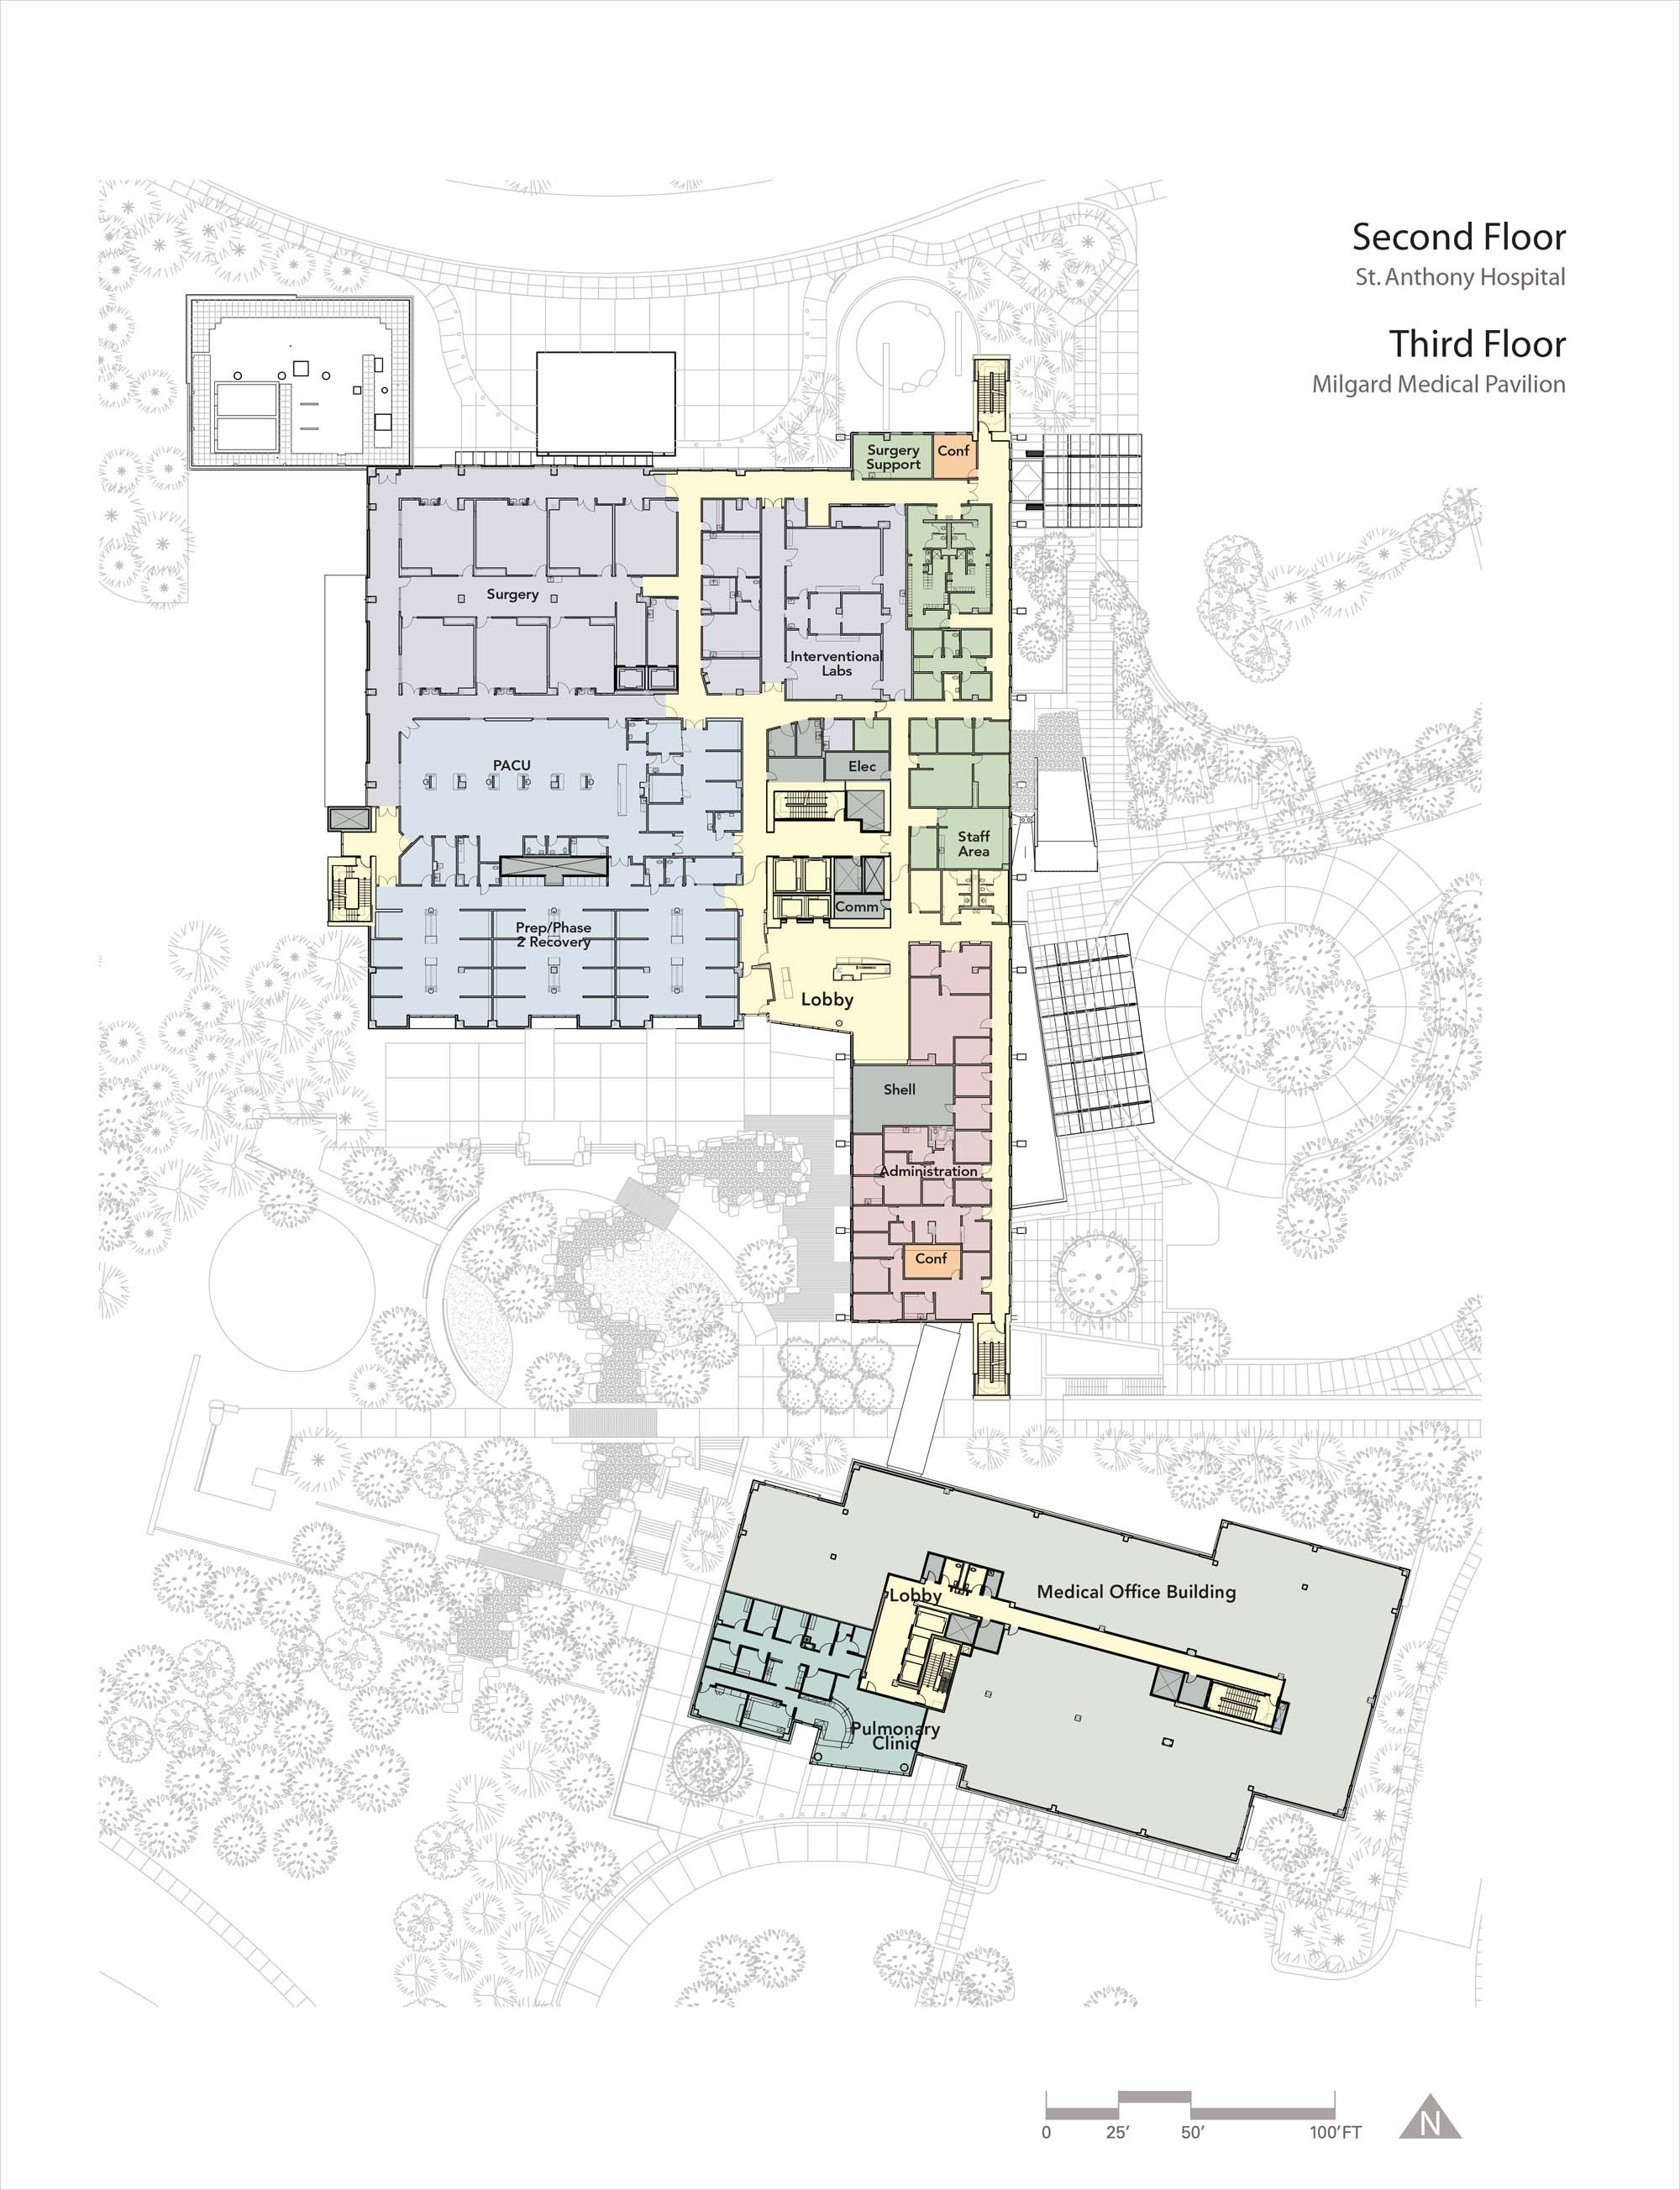 Nursing Home Layout Design Gallery Of St Anthony Hospital Zgf Architects Llp 14